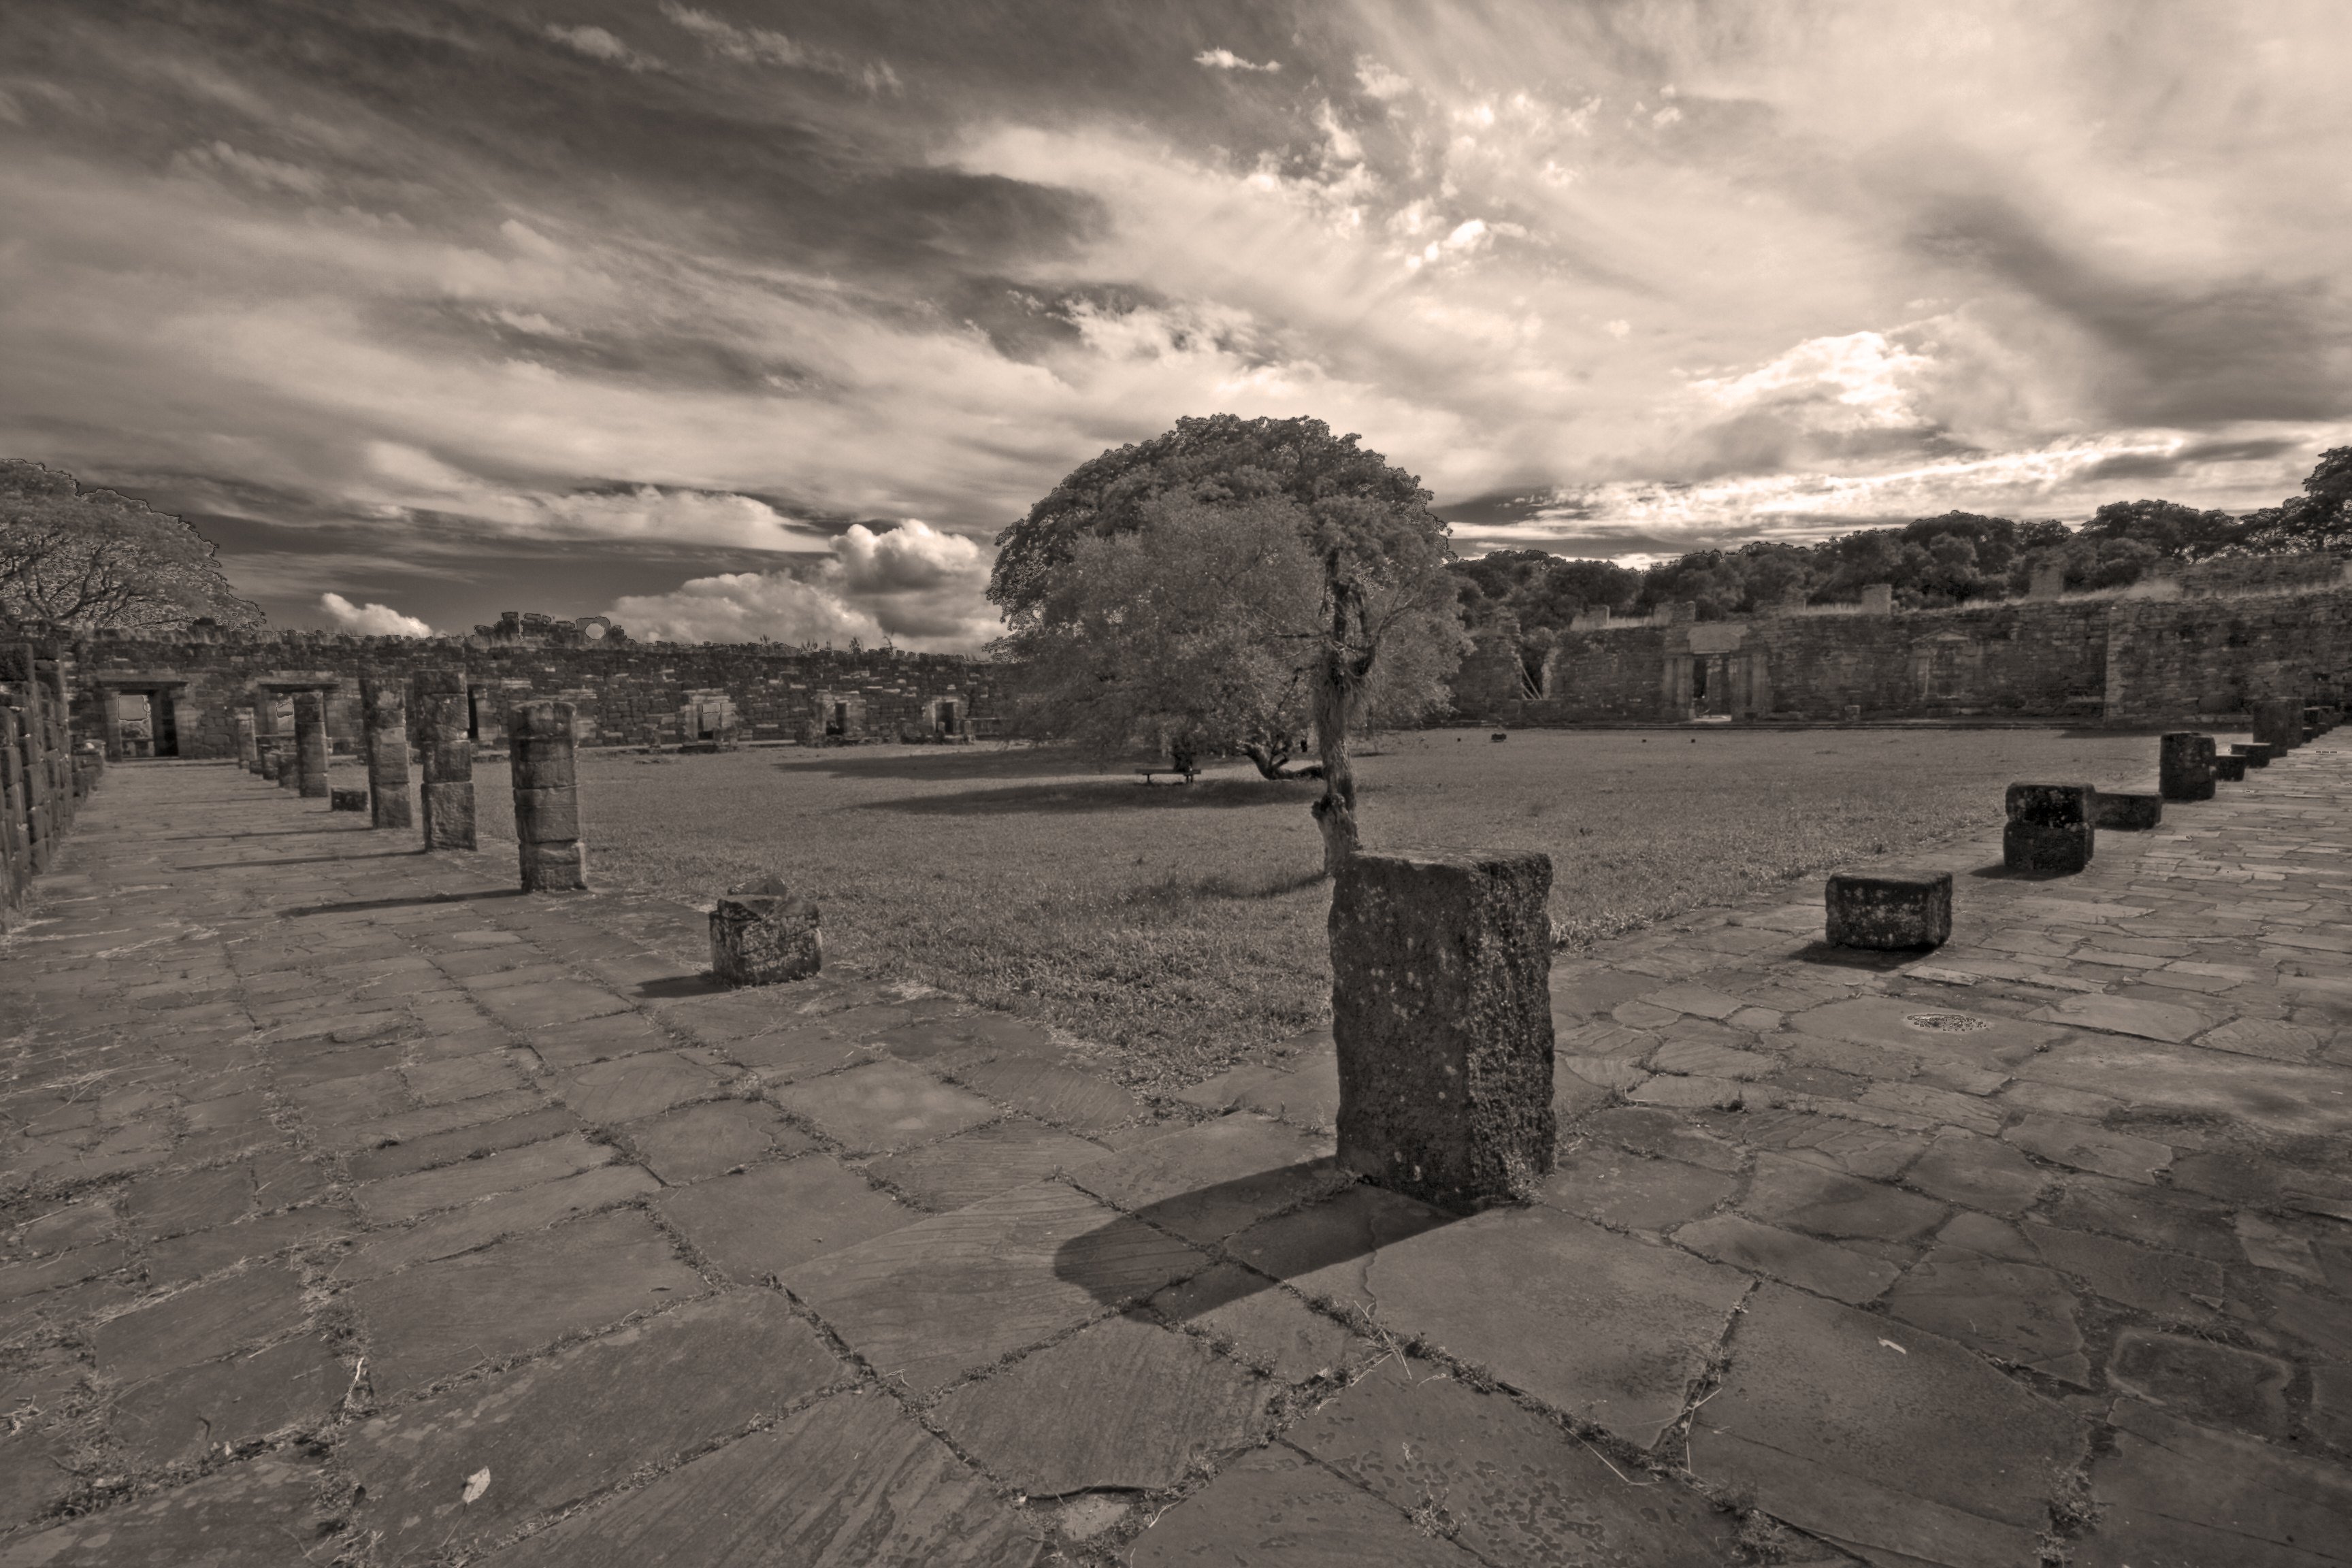 View on the outside of the ruins – BW